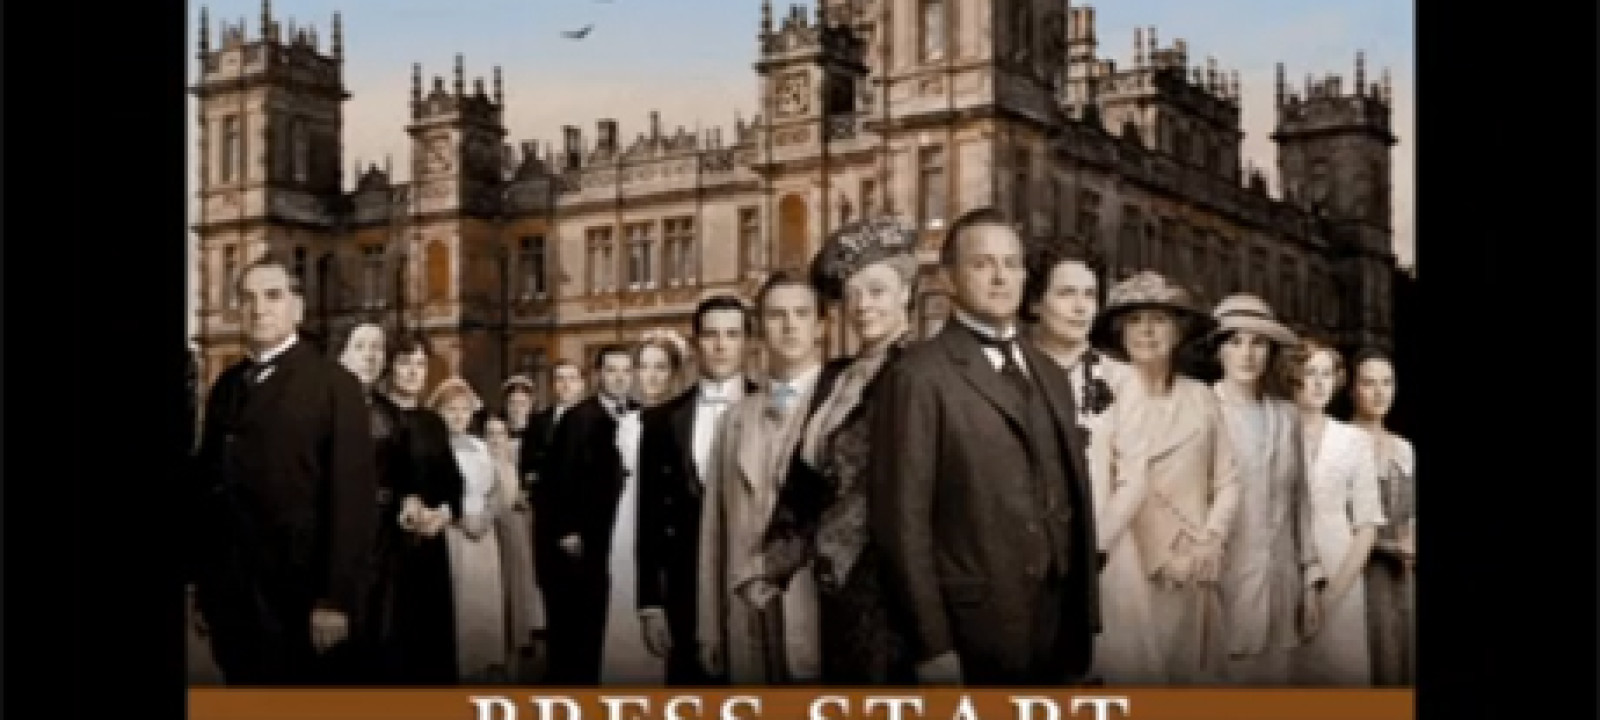 460x300_downtonabbey_snes